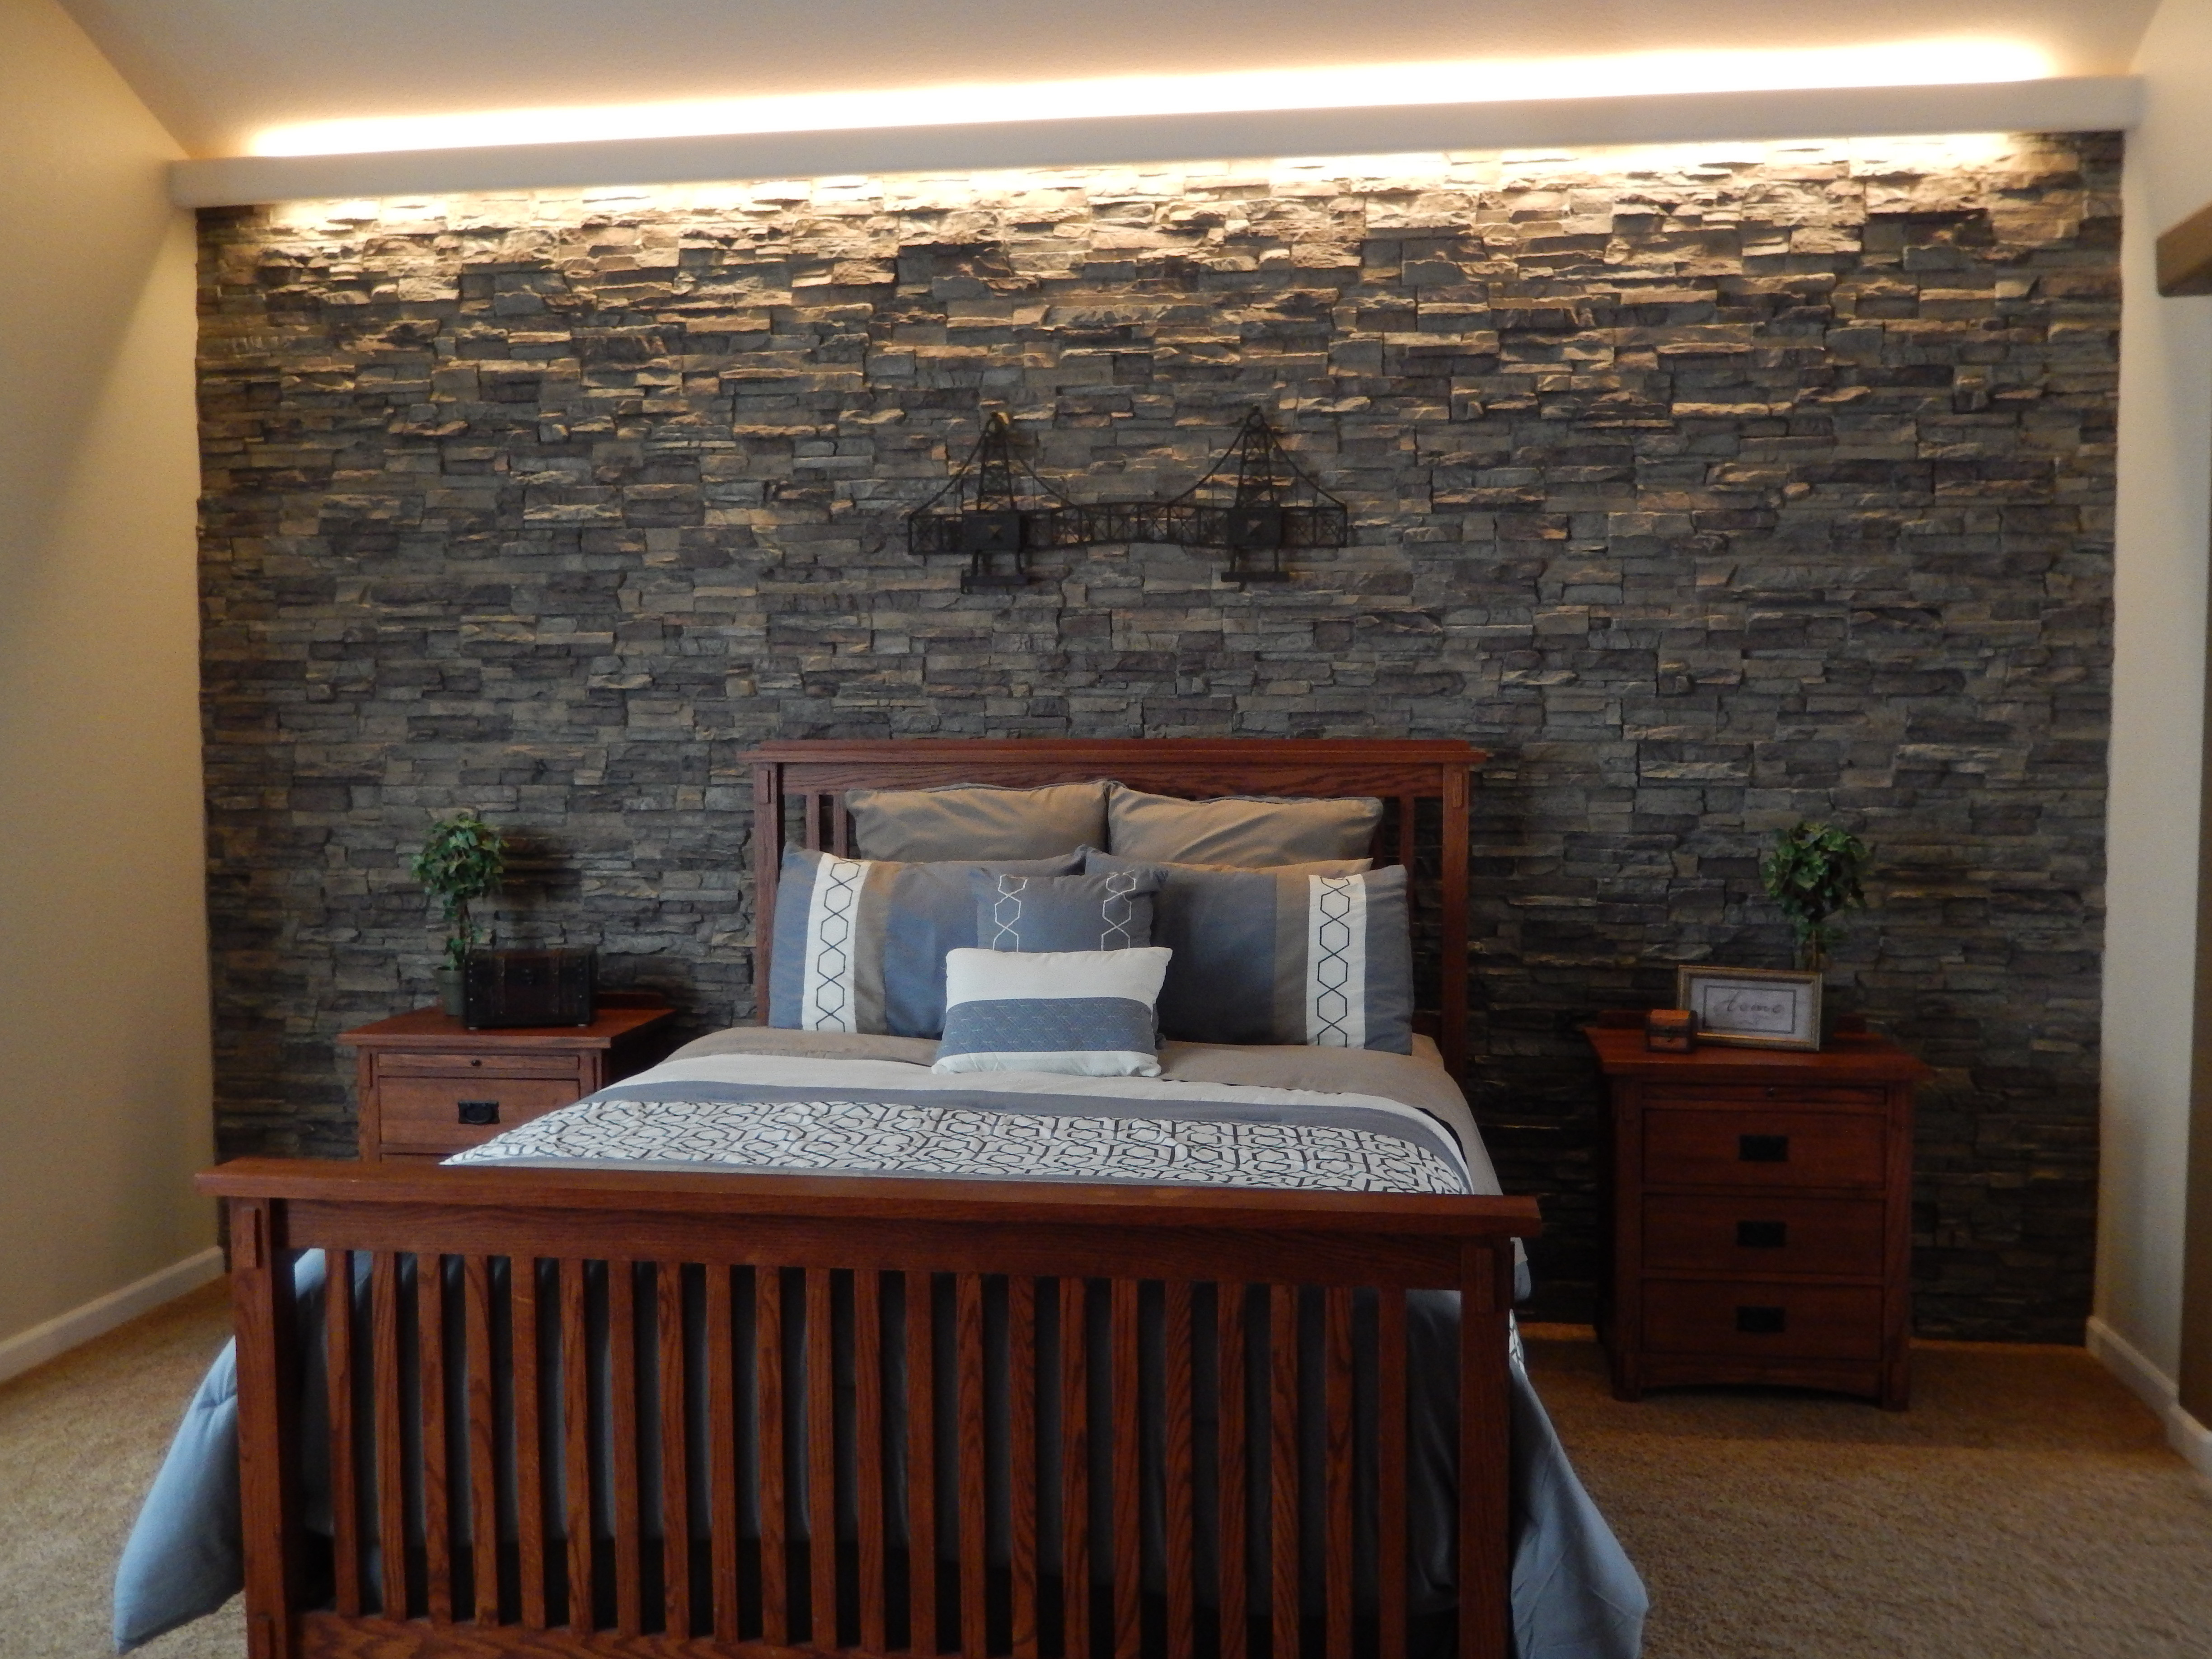 Best ideas about Stacked Stone Accent Wall . Save or Pin Splendid Stone Textured Accent Walls Now.